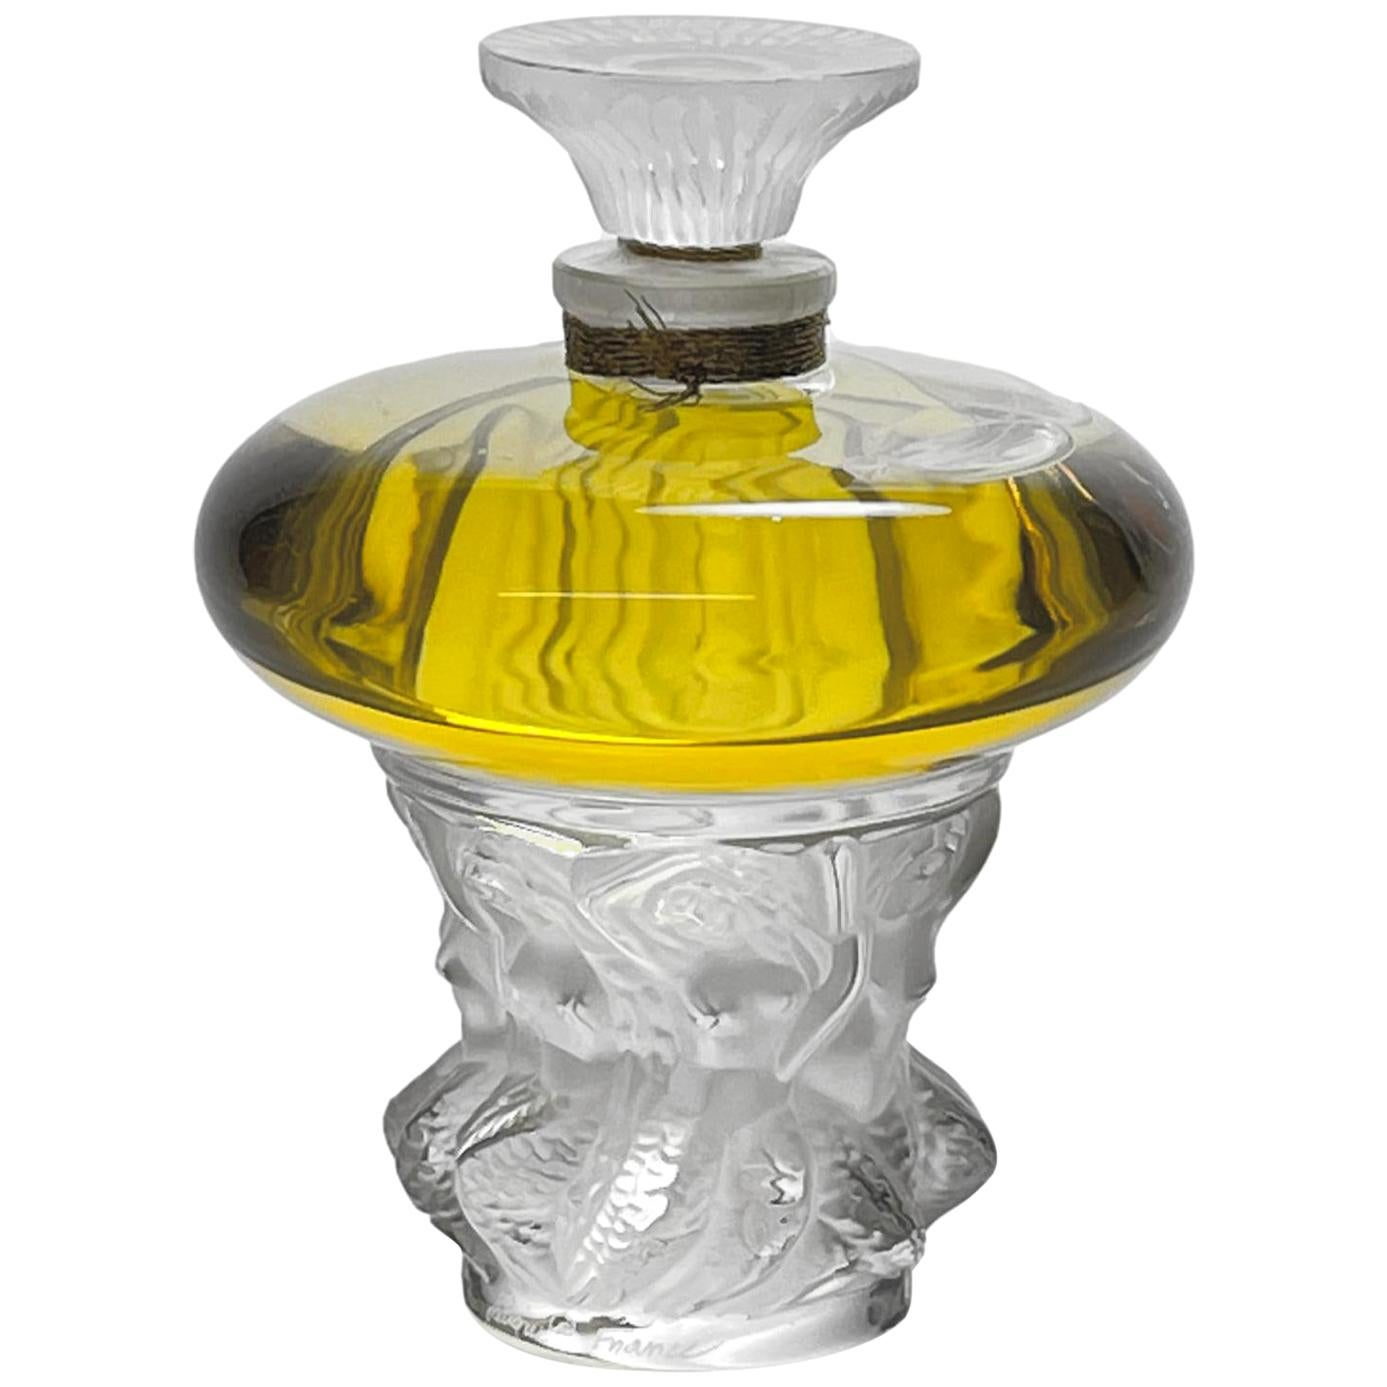 """Limited Edition """"Les Sirens"""" Perfume Bottle by Marie Claude Lalique"""